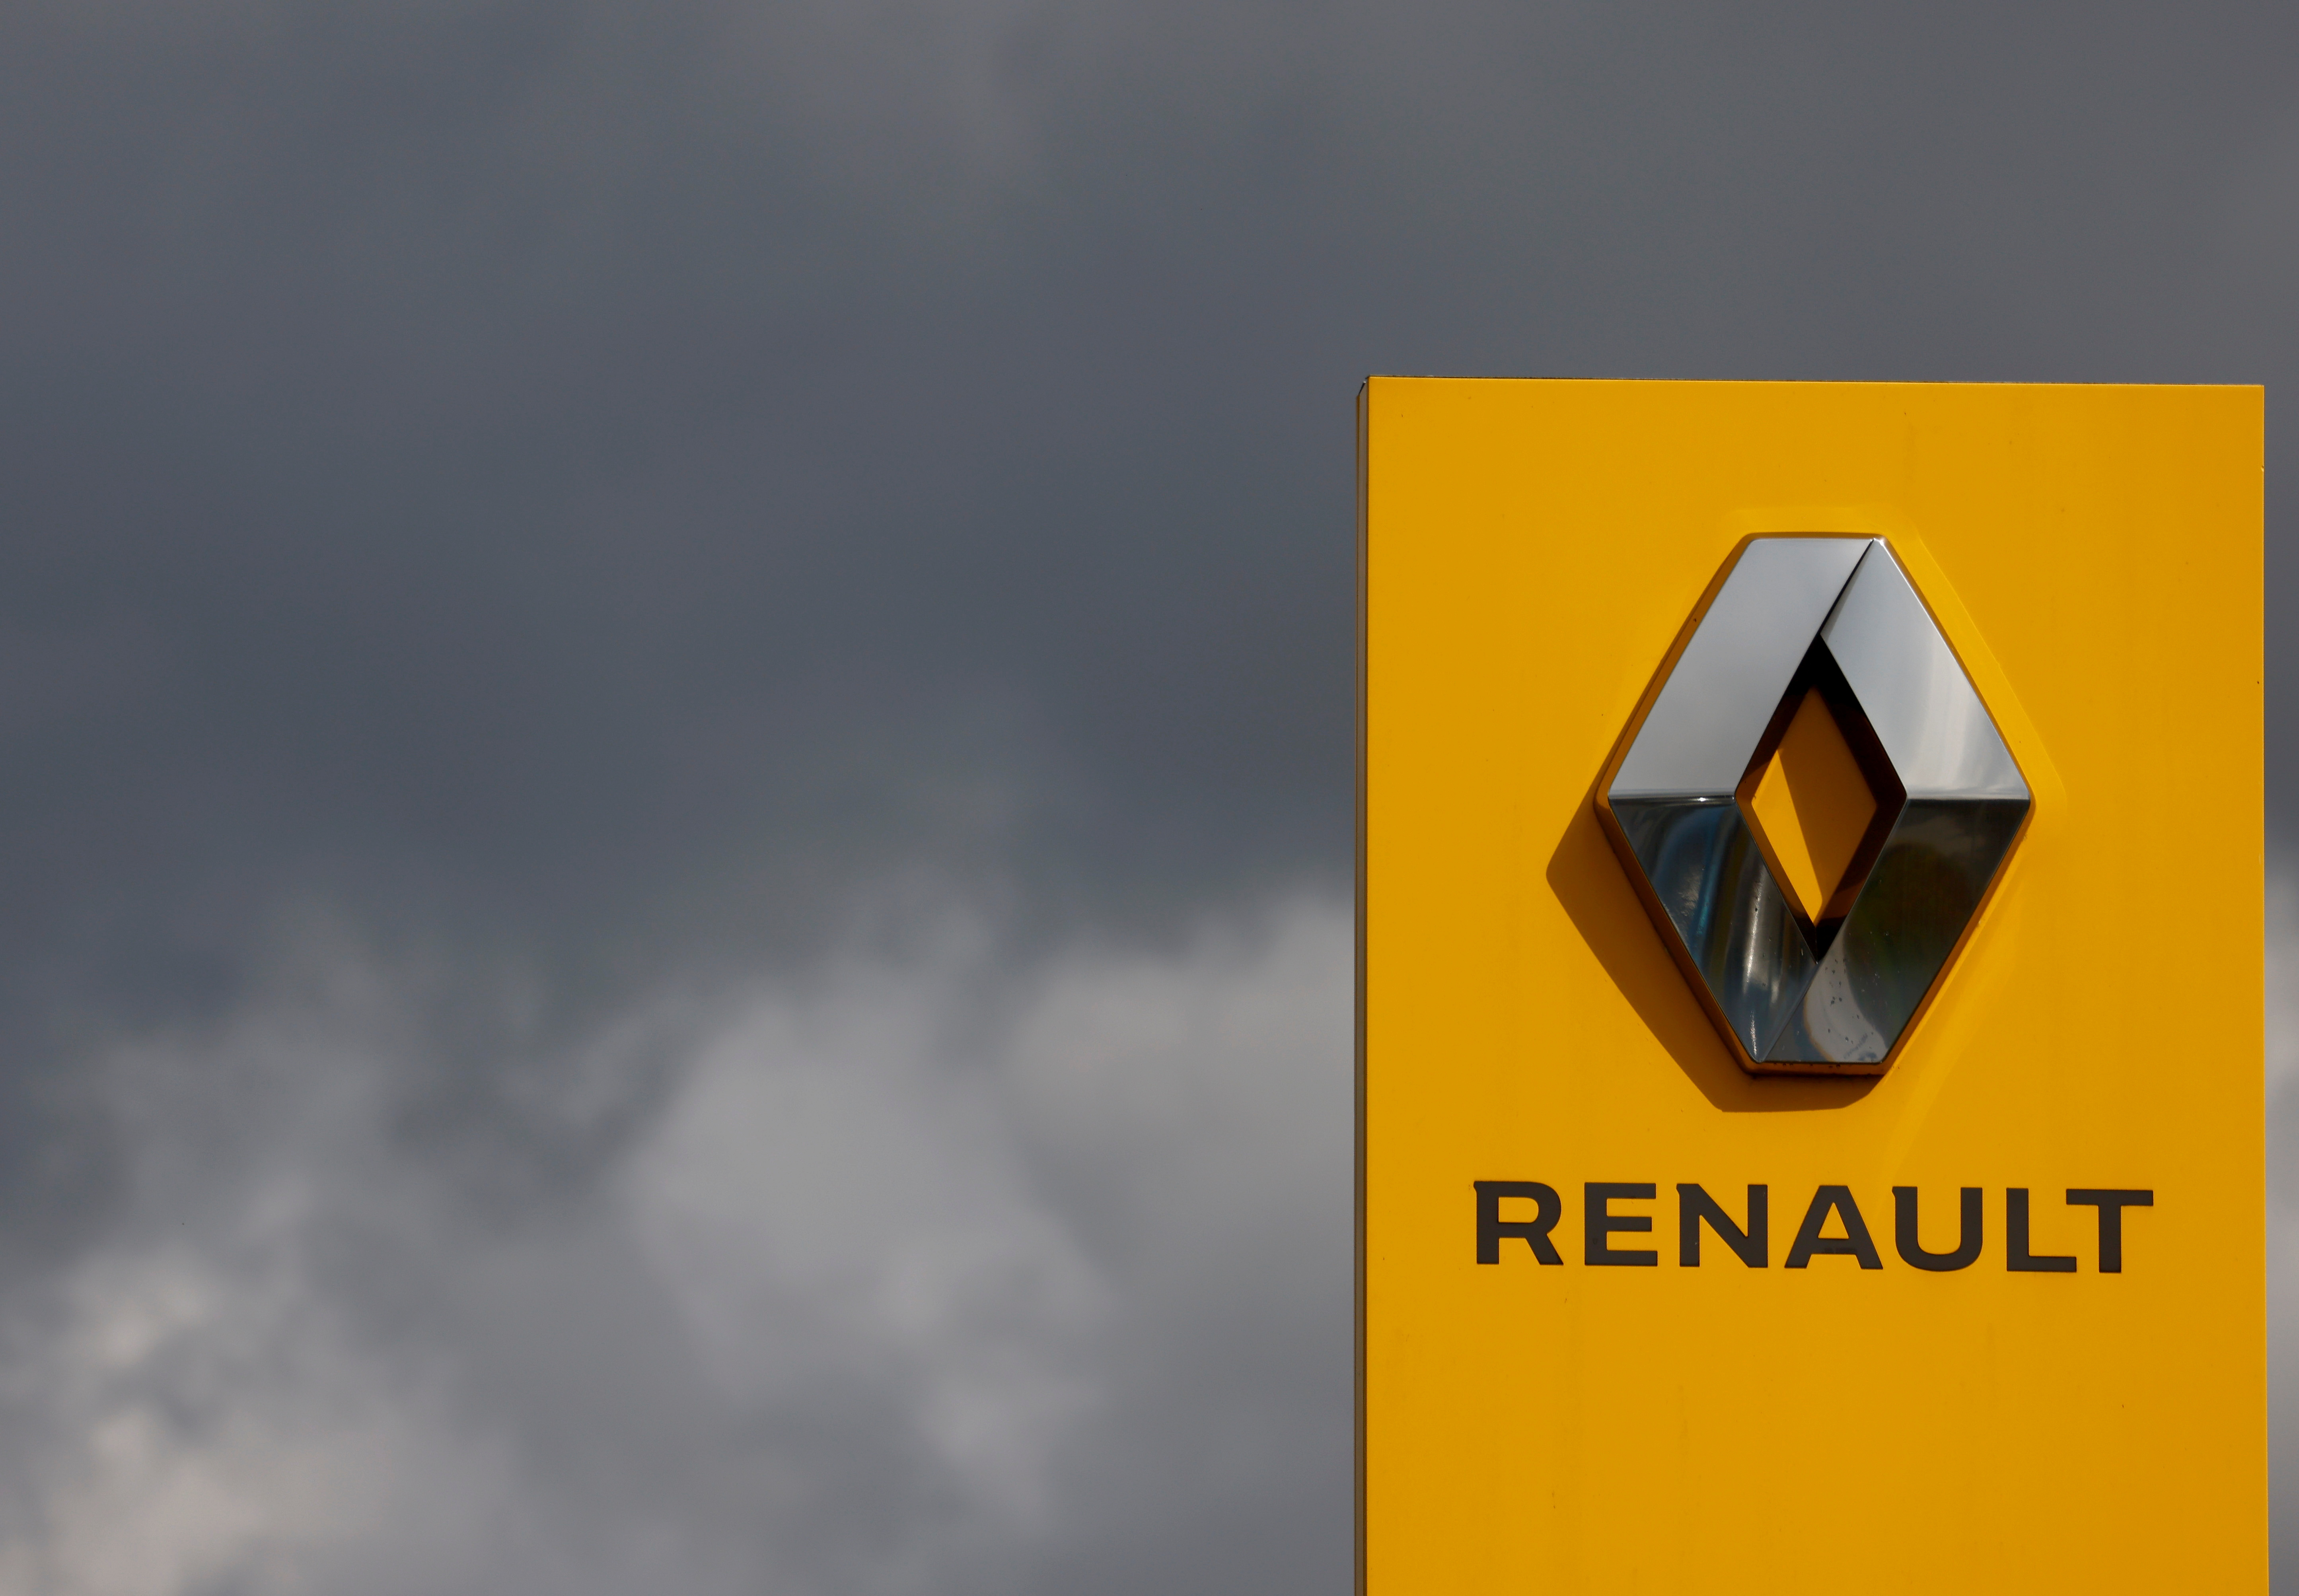 The logo of Renault carmaker is pictured at a dealership in Les Sorinieres, near Nantes, France, September 9, 2021. REUTERS/Stephane Mahe